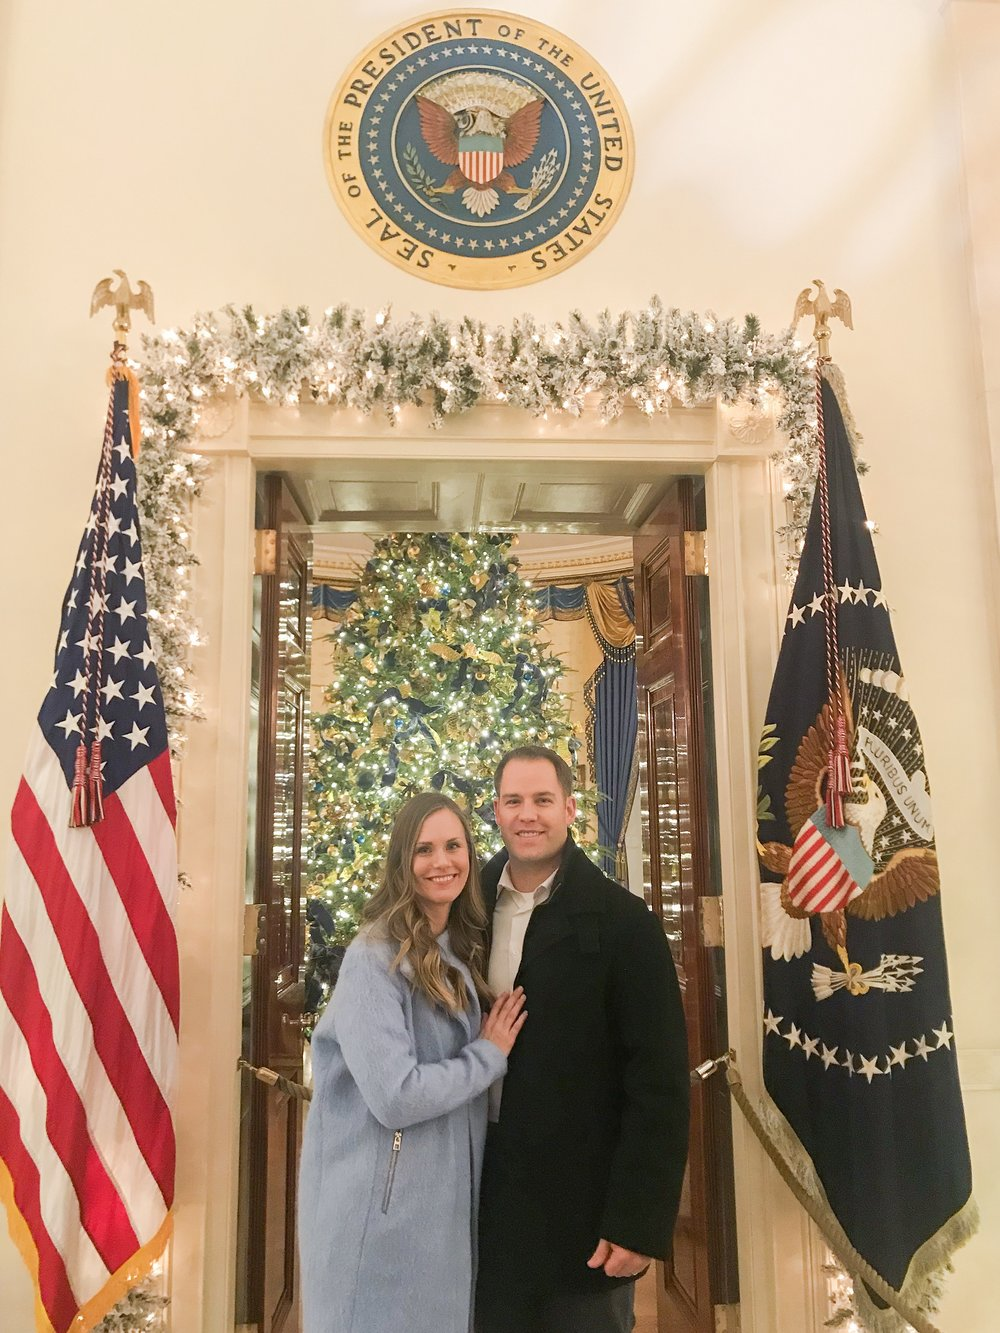 Touring the White House at Christmas is one of the best things you can do in Washington D.C.!